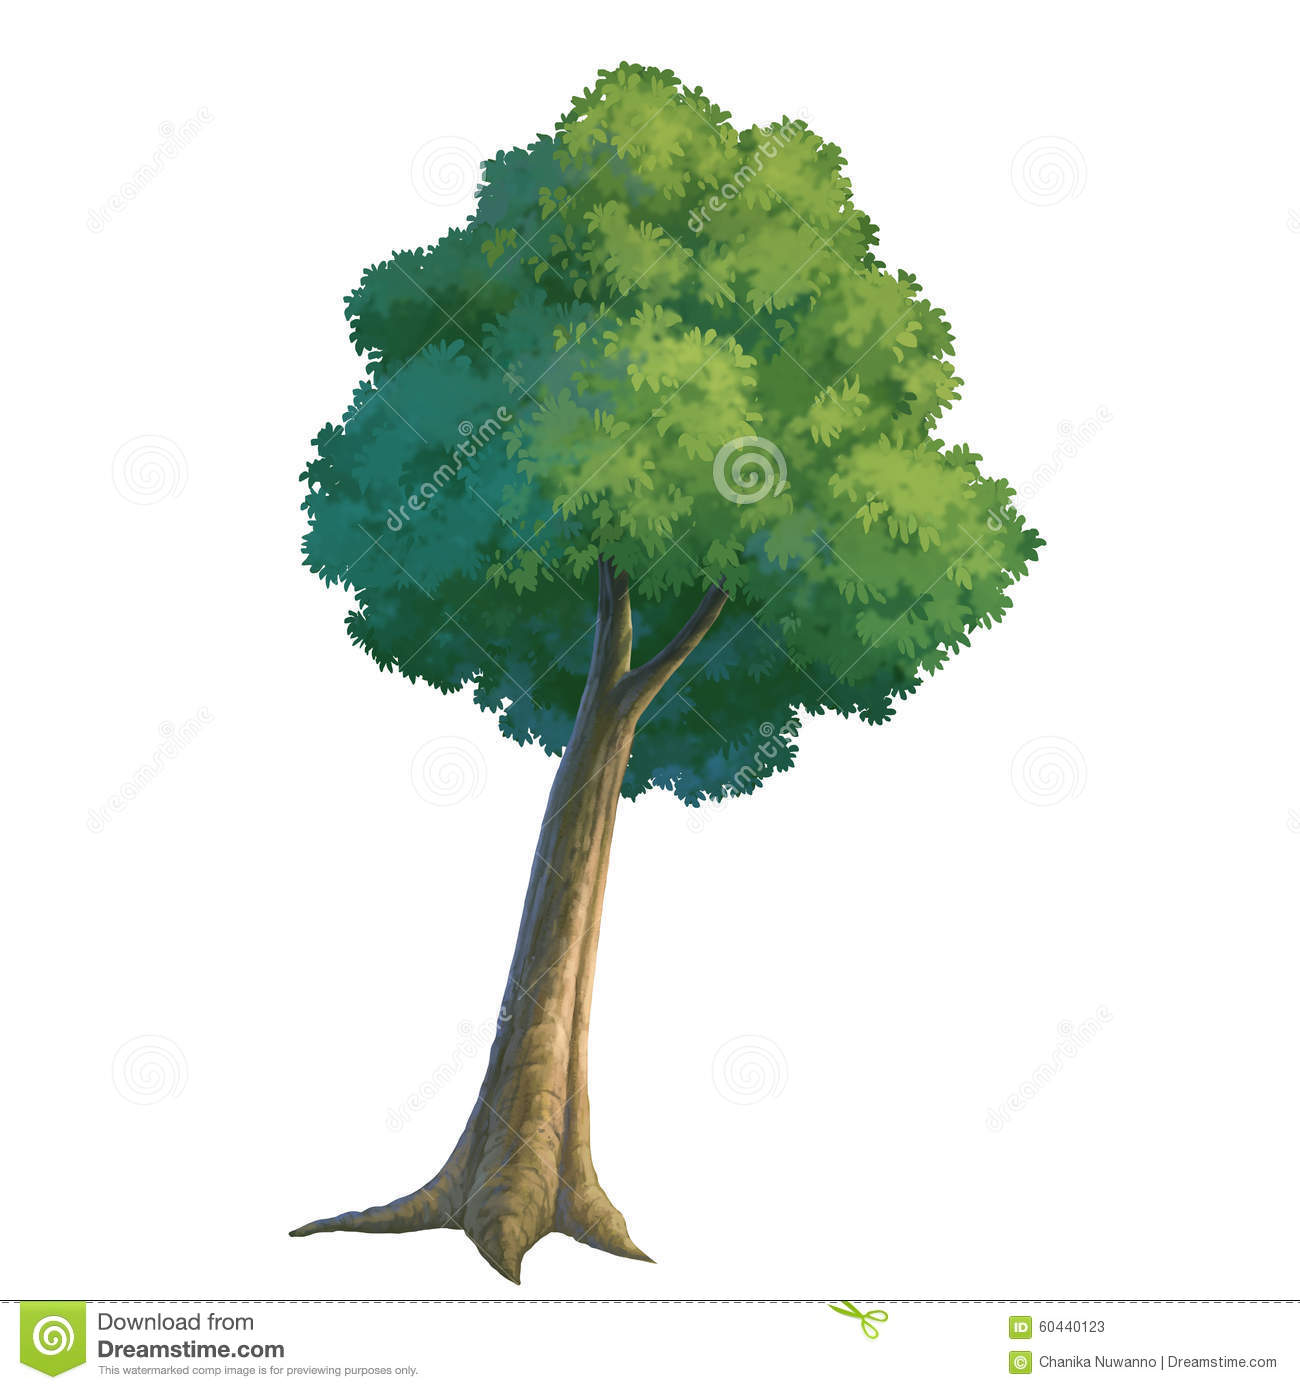 Tree paint stock illustration image 60440123 for How to paint a tree